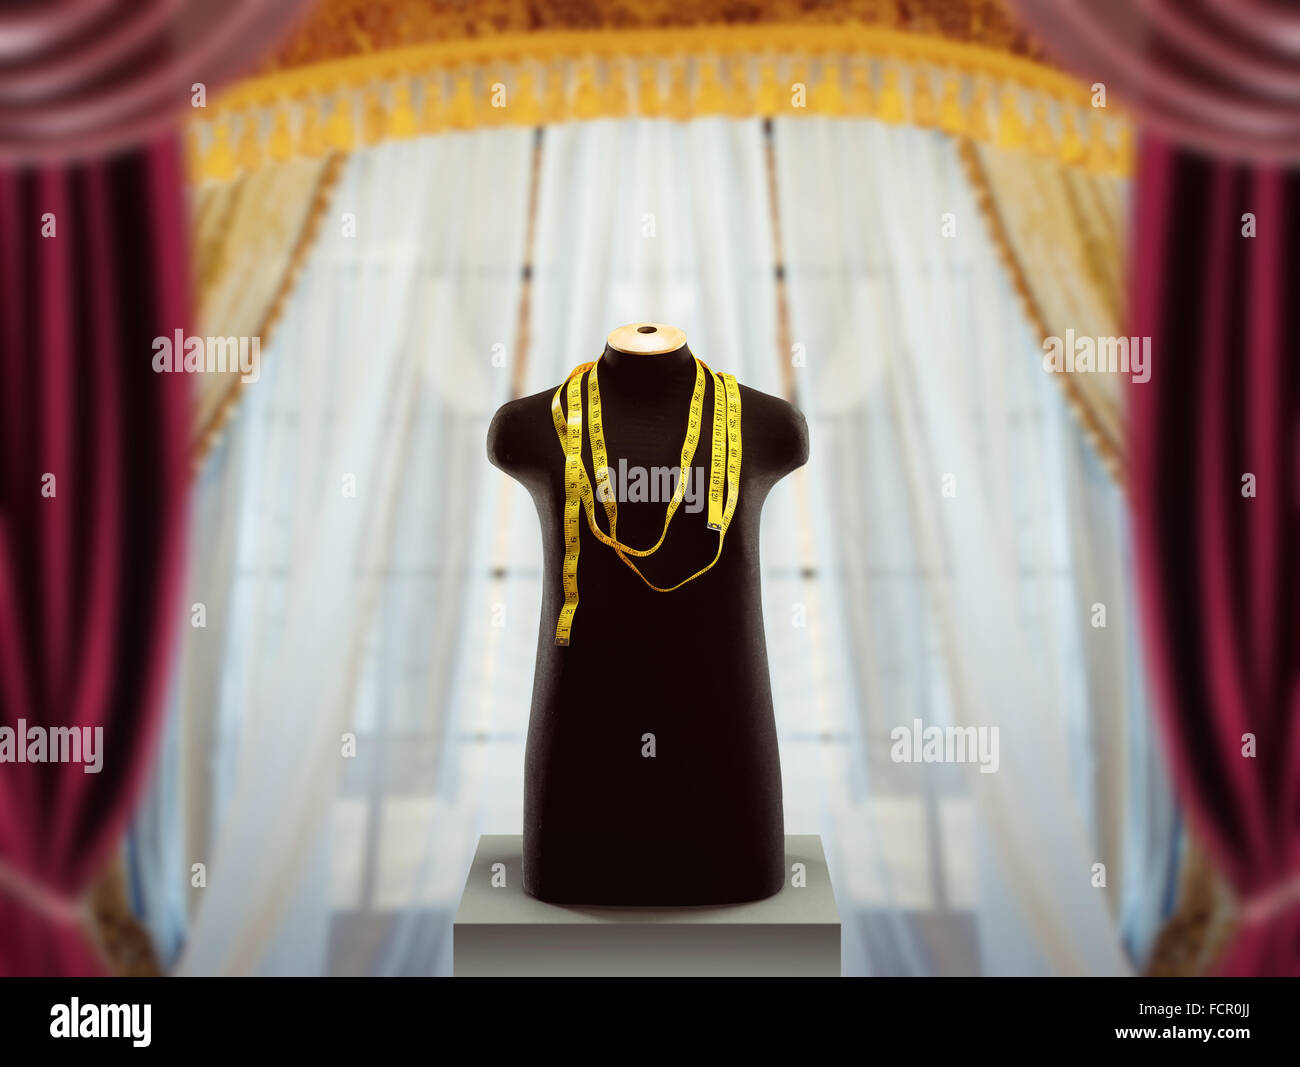 Clothing mannequin - Stock Image